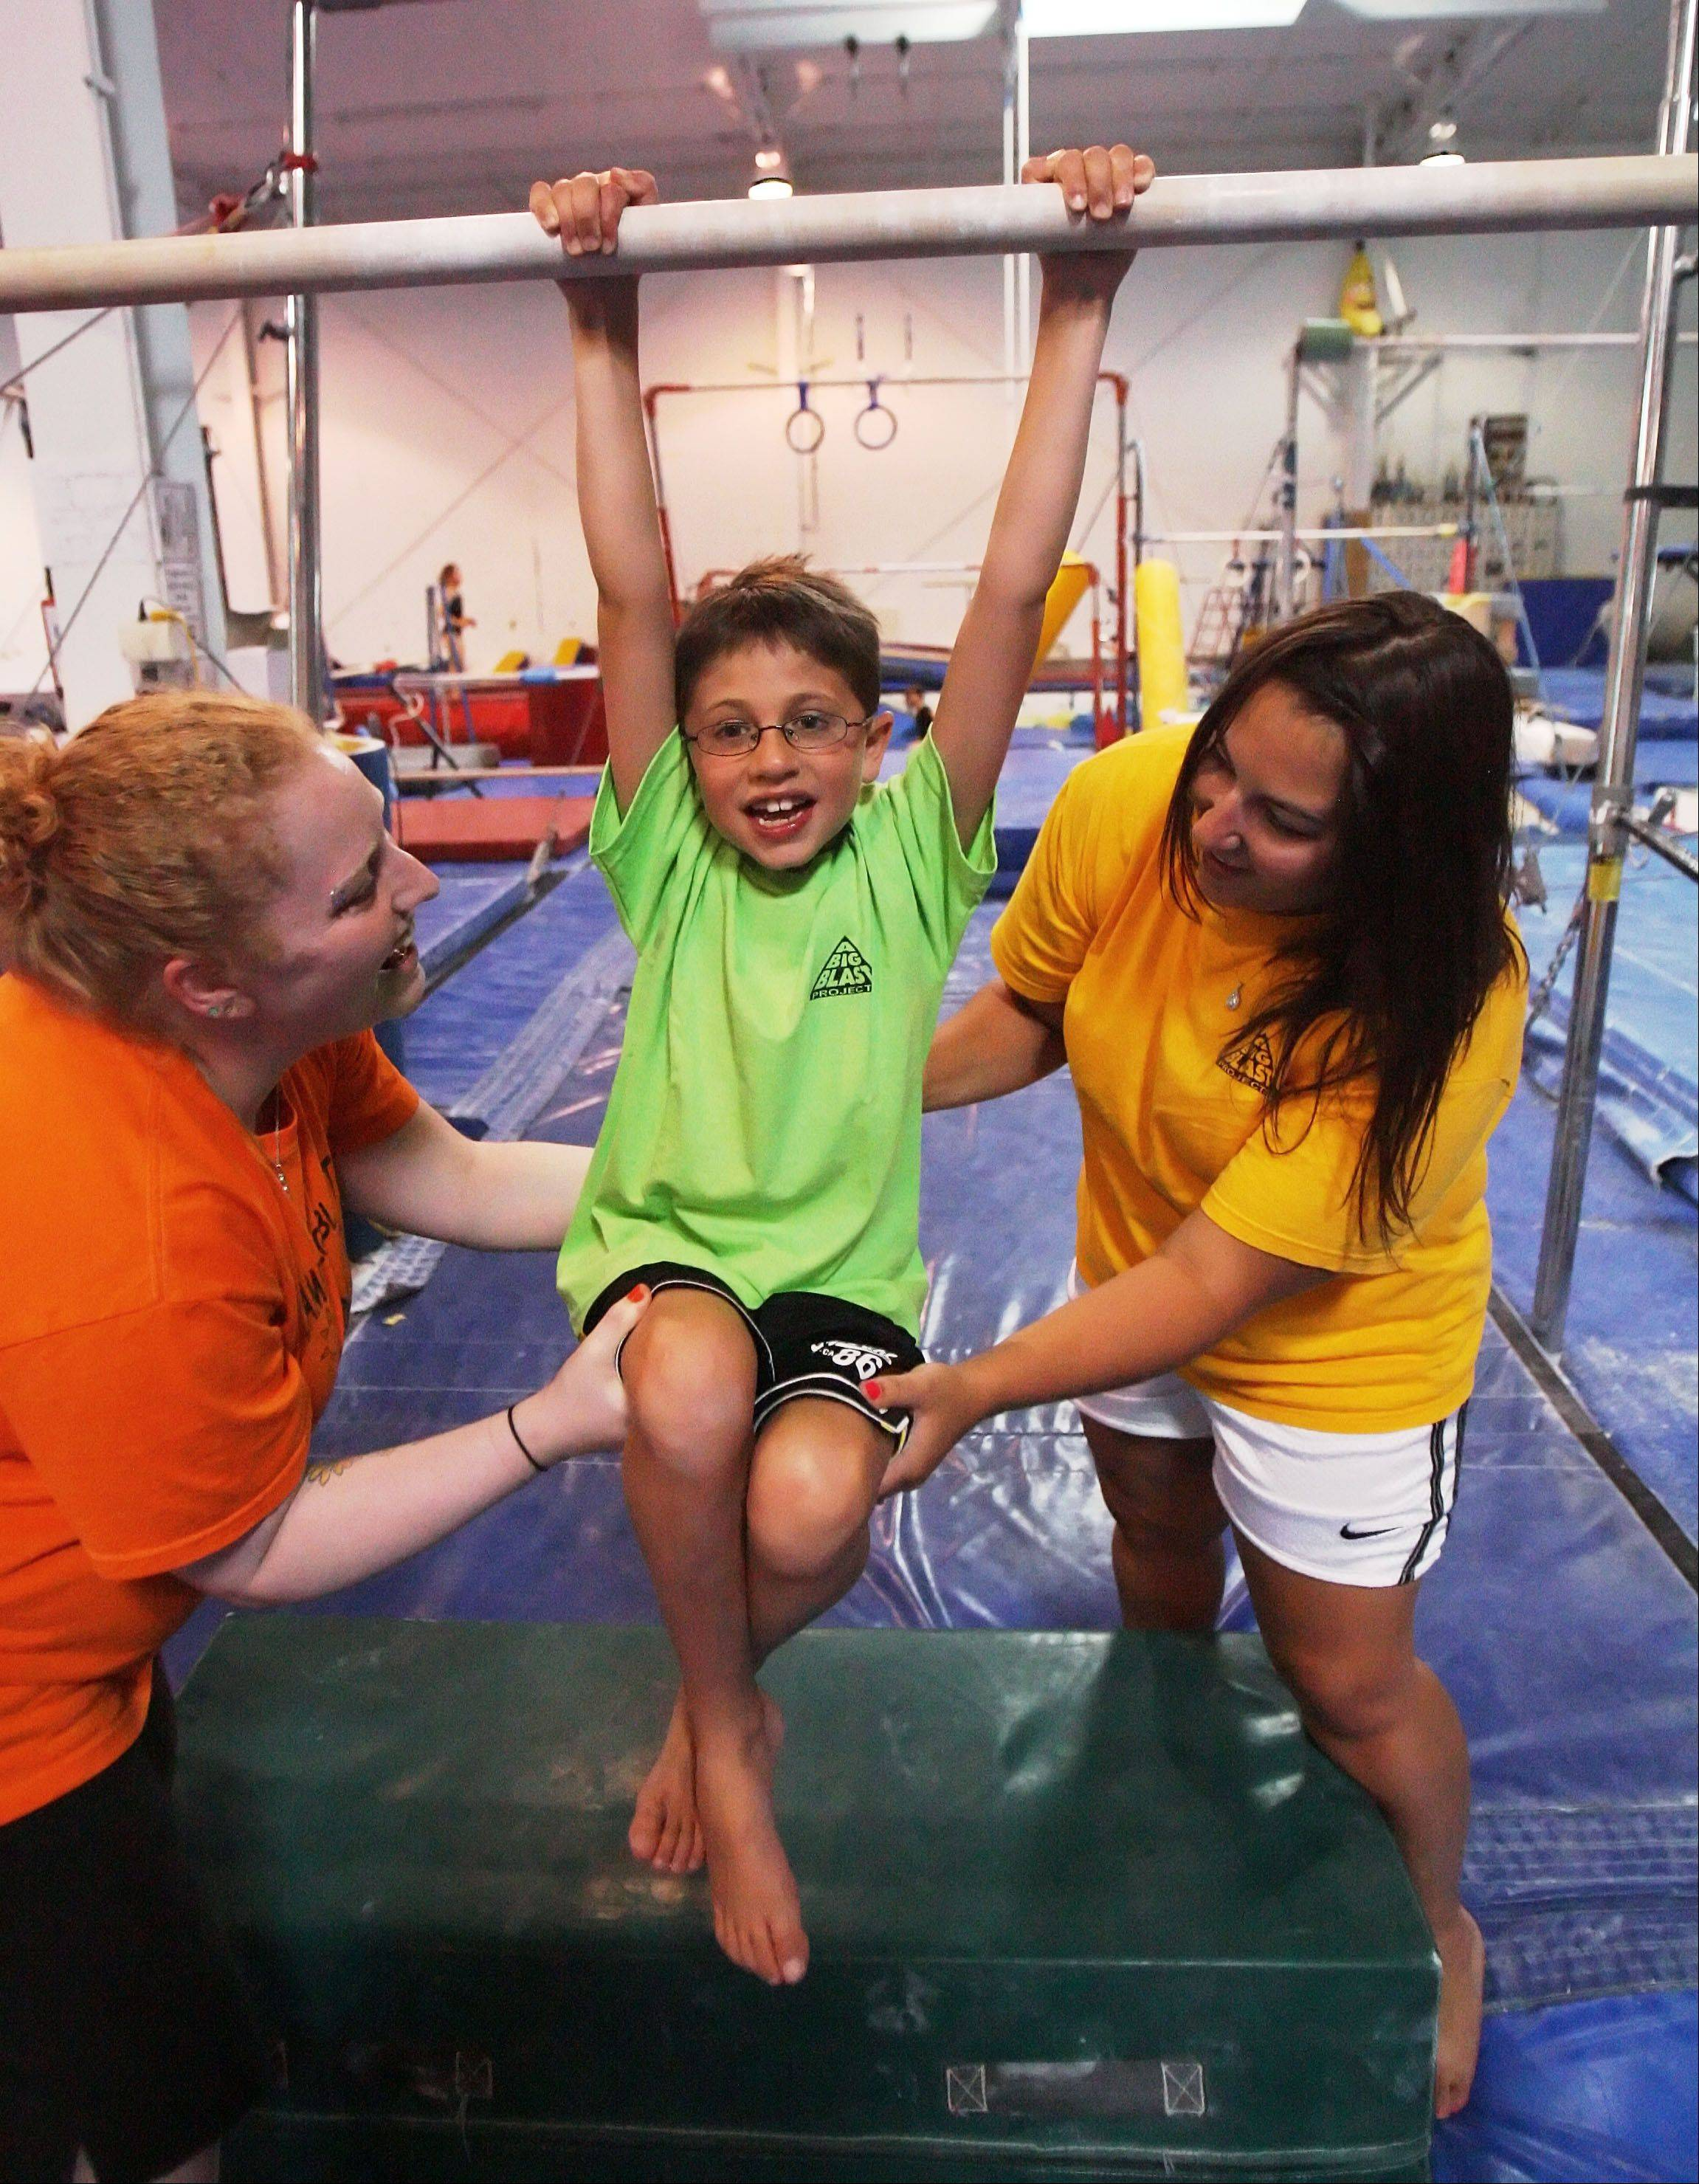 Steve LundyJanet Wadkins, left, director of A Big Blast Project and occupational therapist Melissa Deets help Colin Brown, 8 of Arlington Heights work on the uneven bars at the Gym Spot in Mundelein. The program uses gymnastics as therapy for kids with developmental issues.